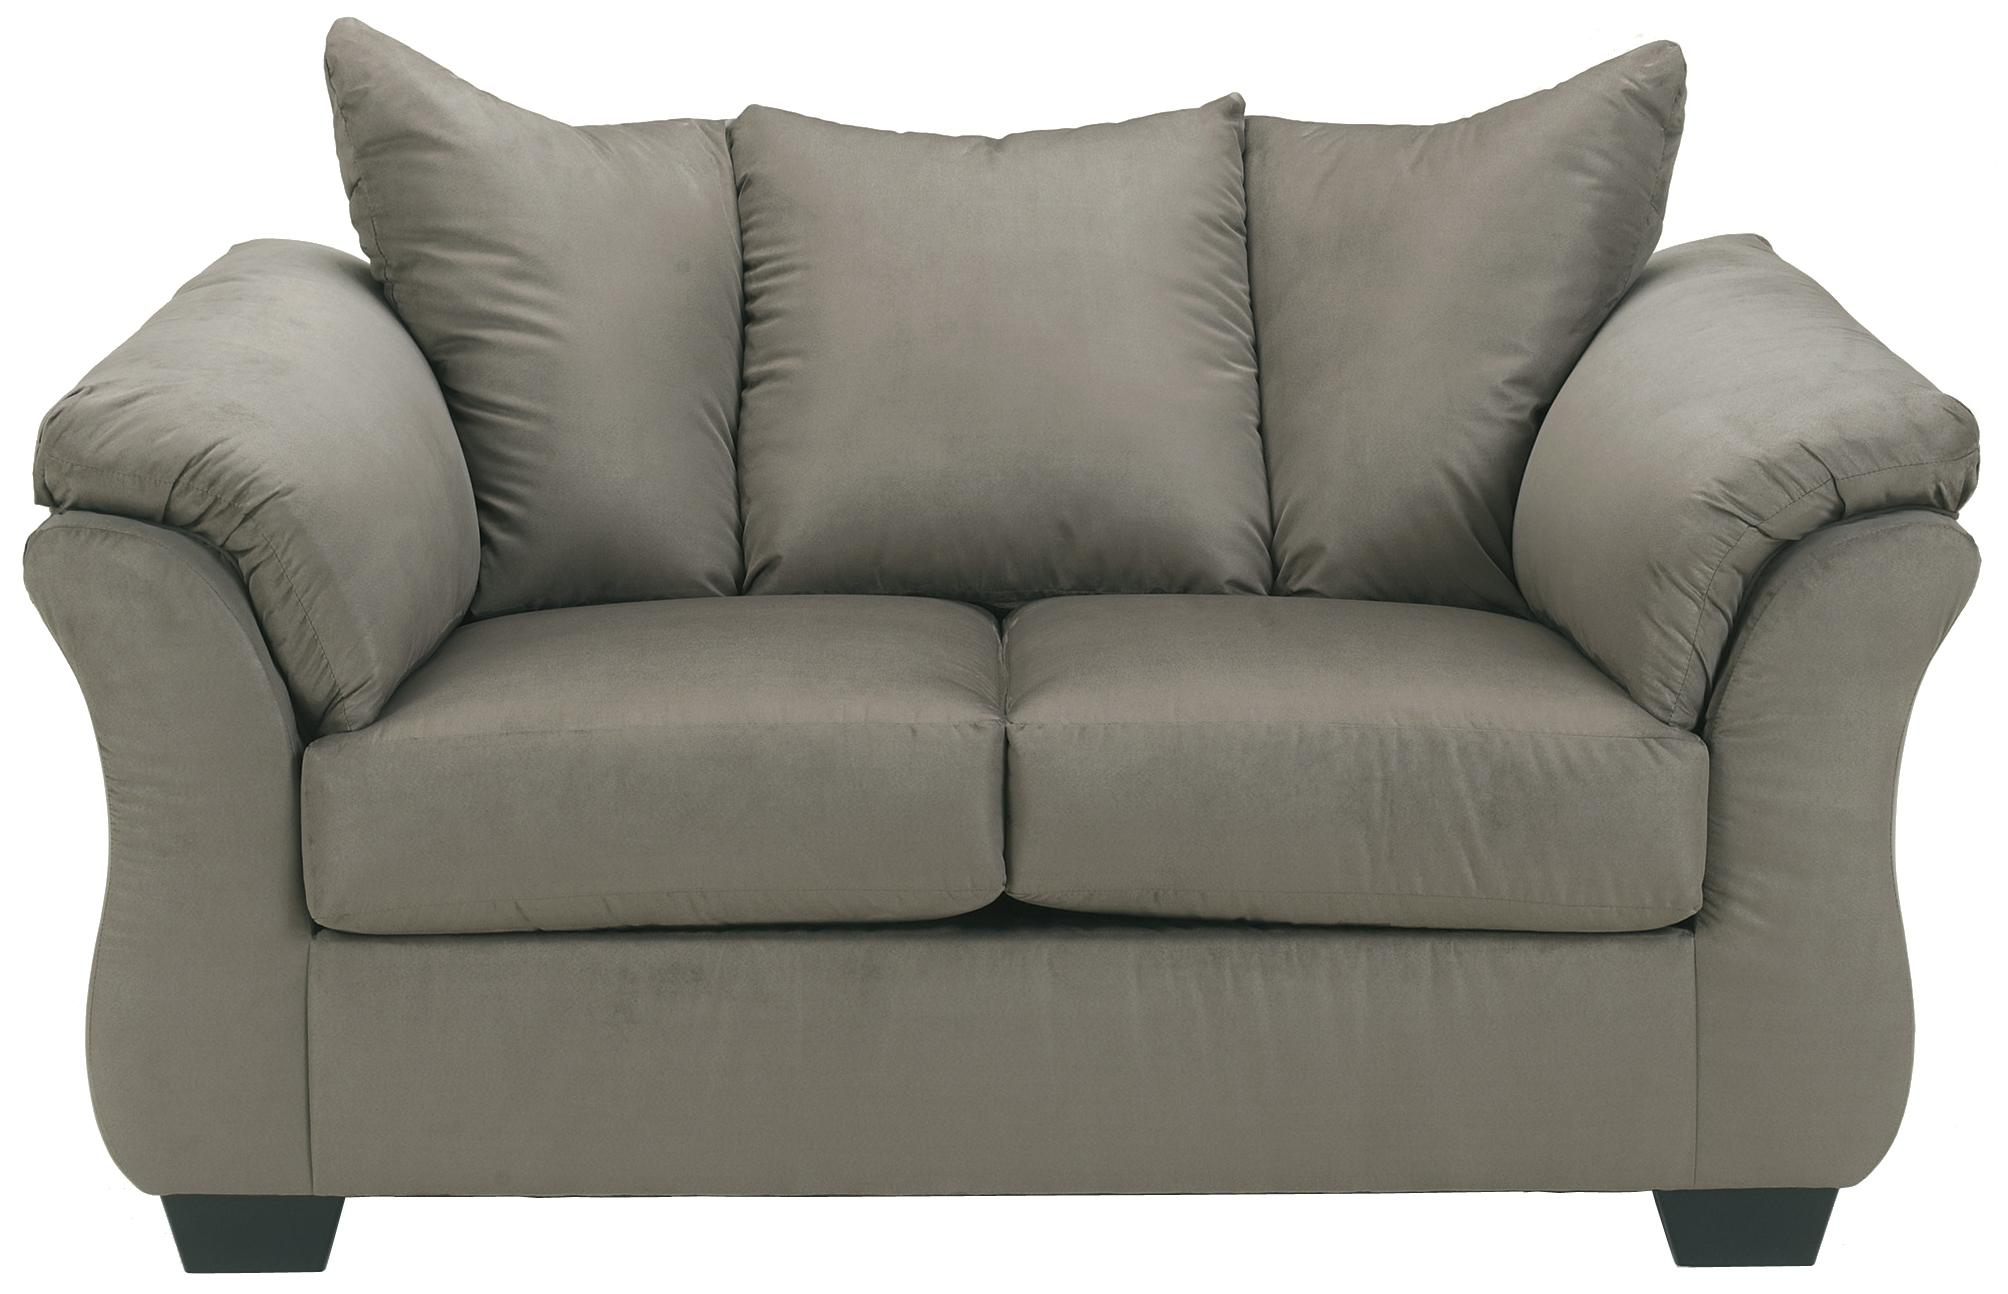 Darcy - Cobblestone Darcy Stationary Loveseat by Ashley at Morris Home